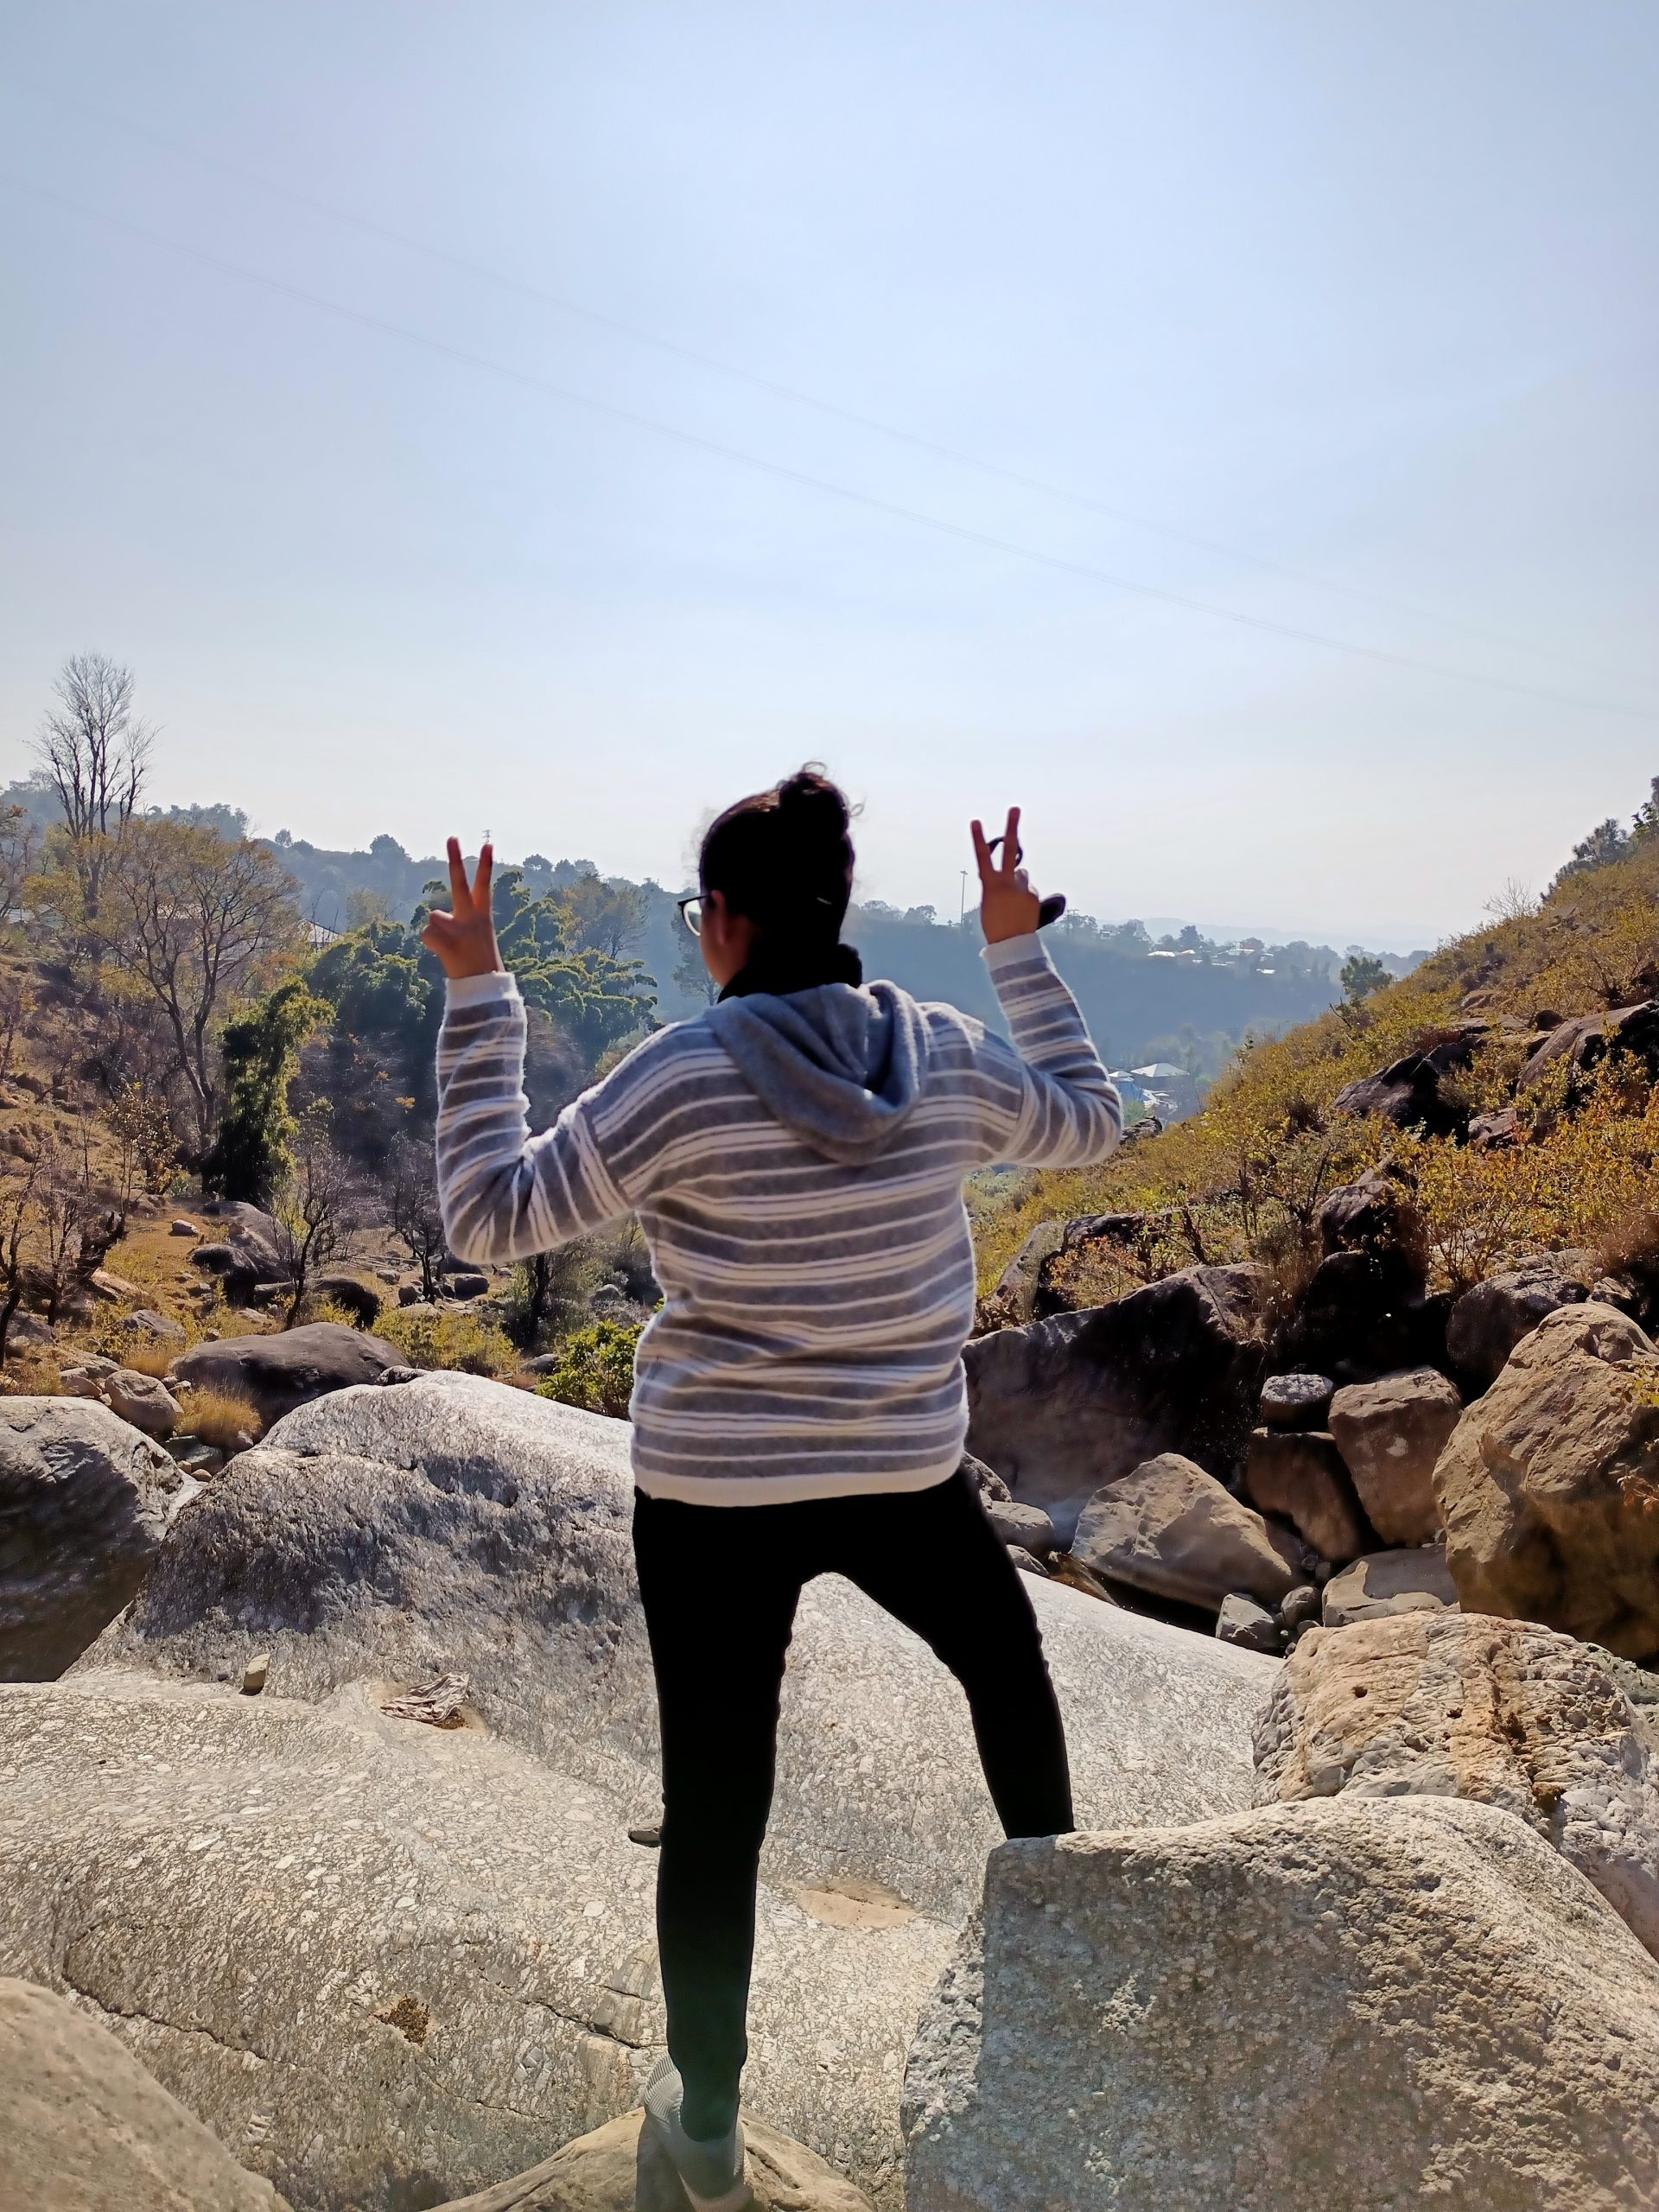 A girl showing victory sign on a rock